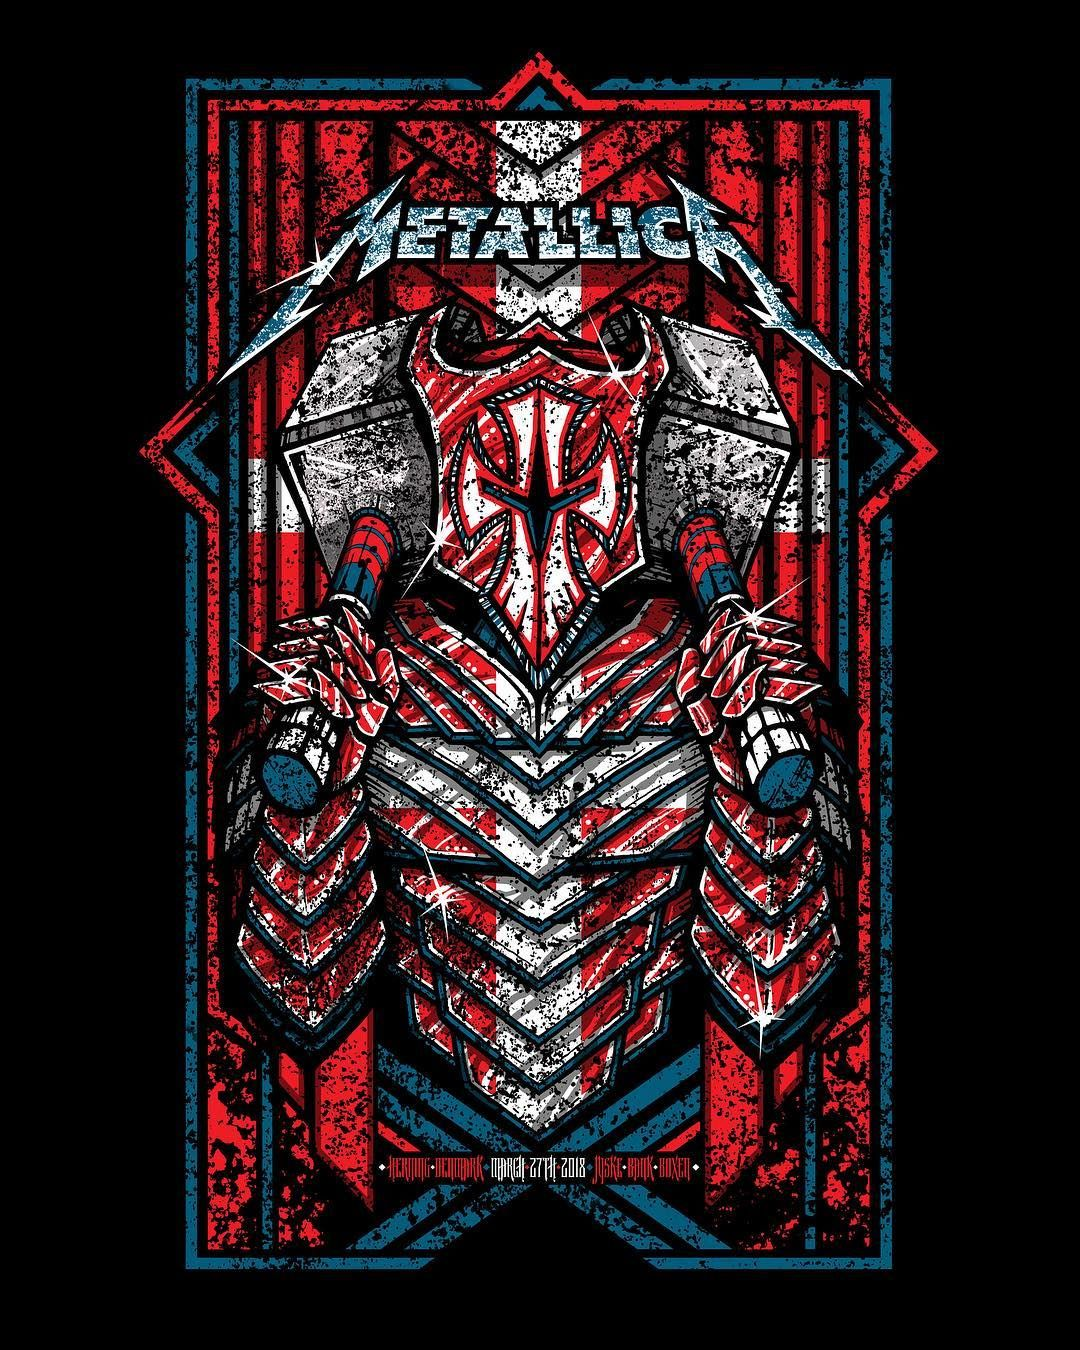 102 7k Vind Ik Leuks 275 Reacties Metallica Metallica Op Instagram Tonight In Herning Jyske Bank Boxen Metallica Art Metallica Metallica Logo